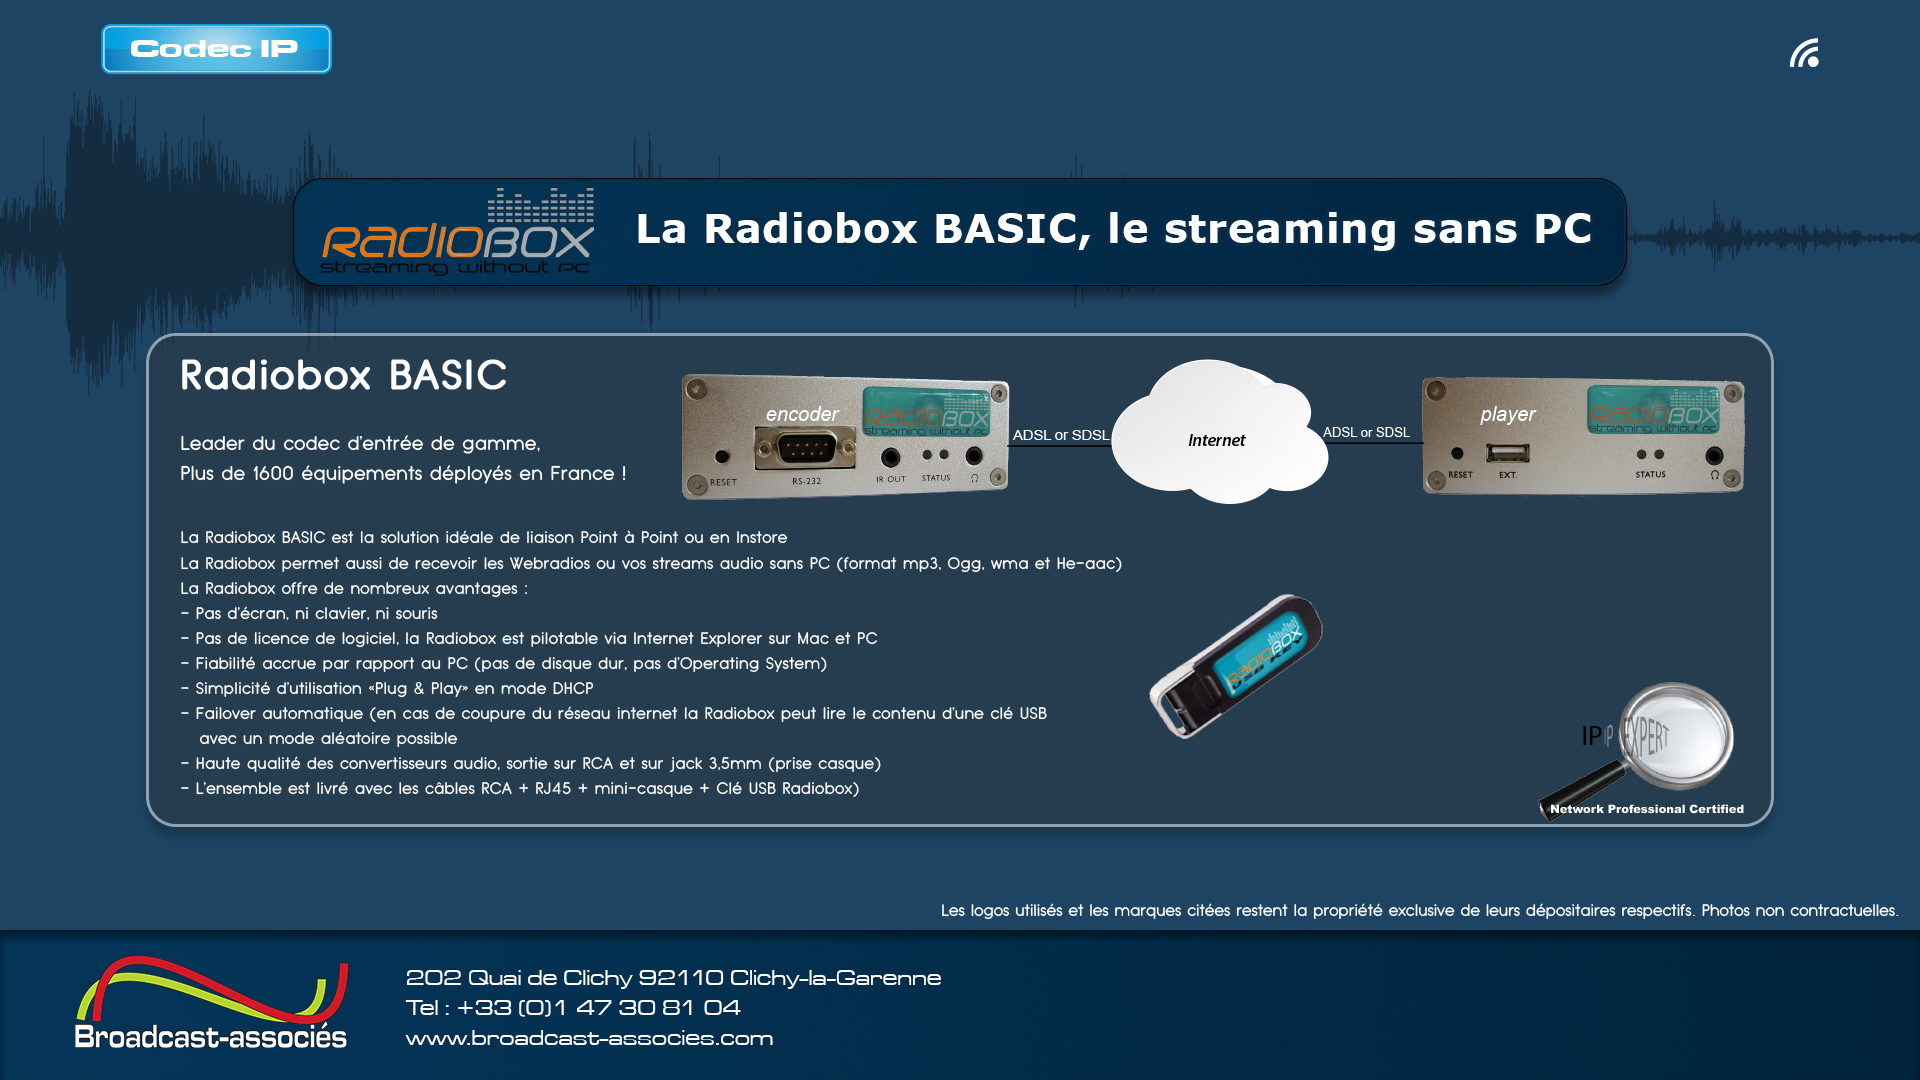 Radiobox Basic